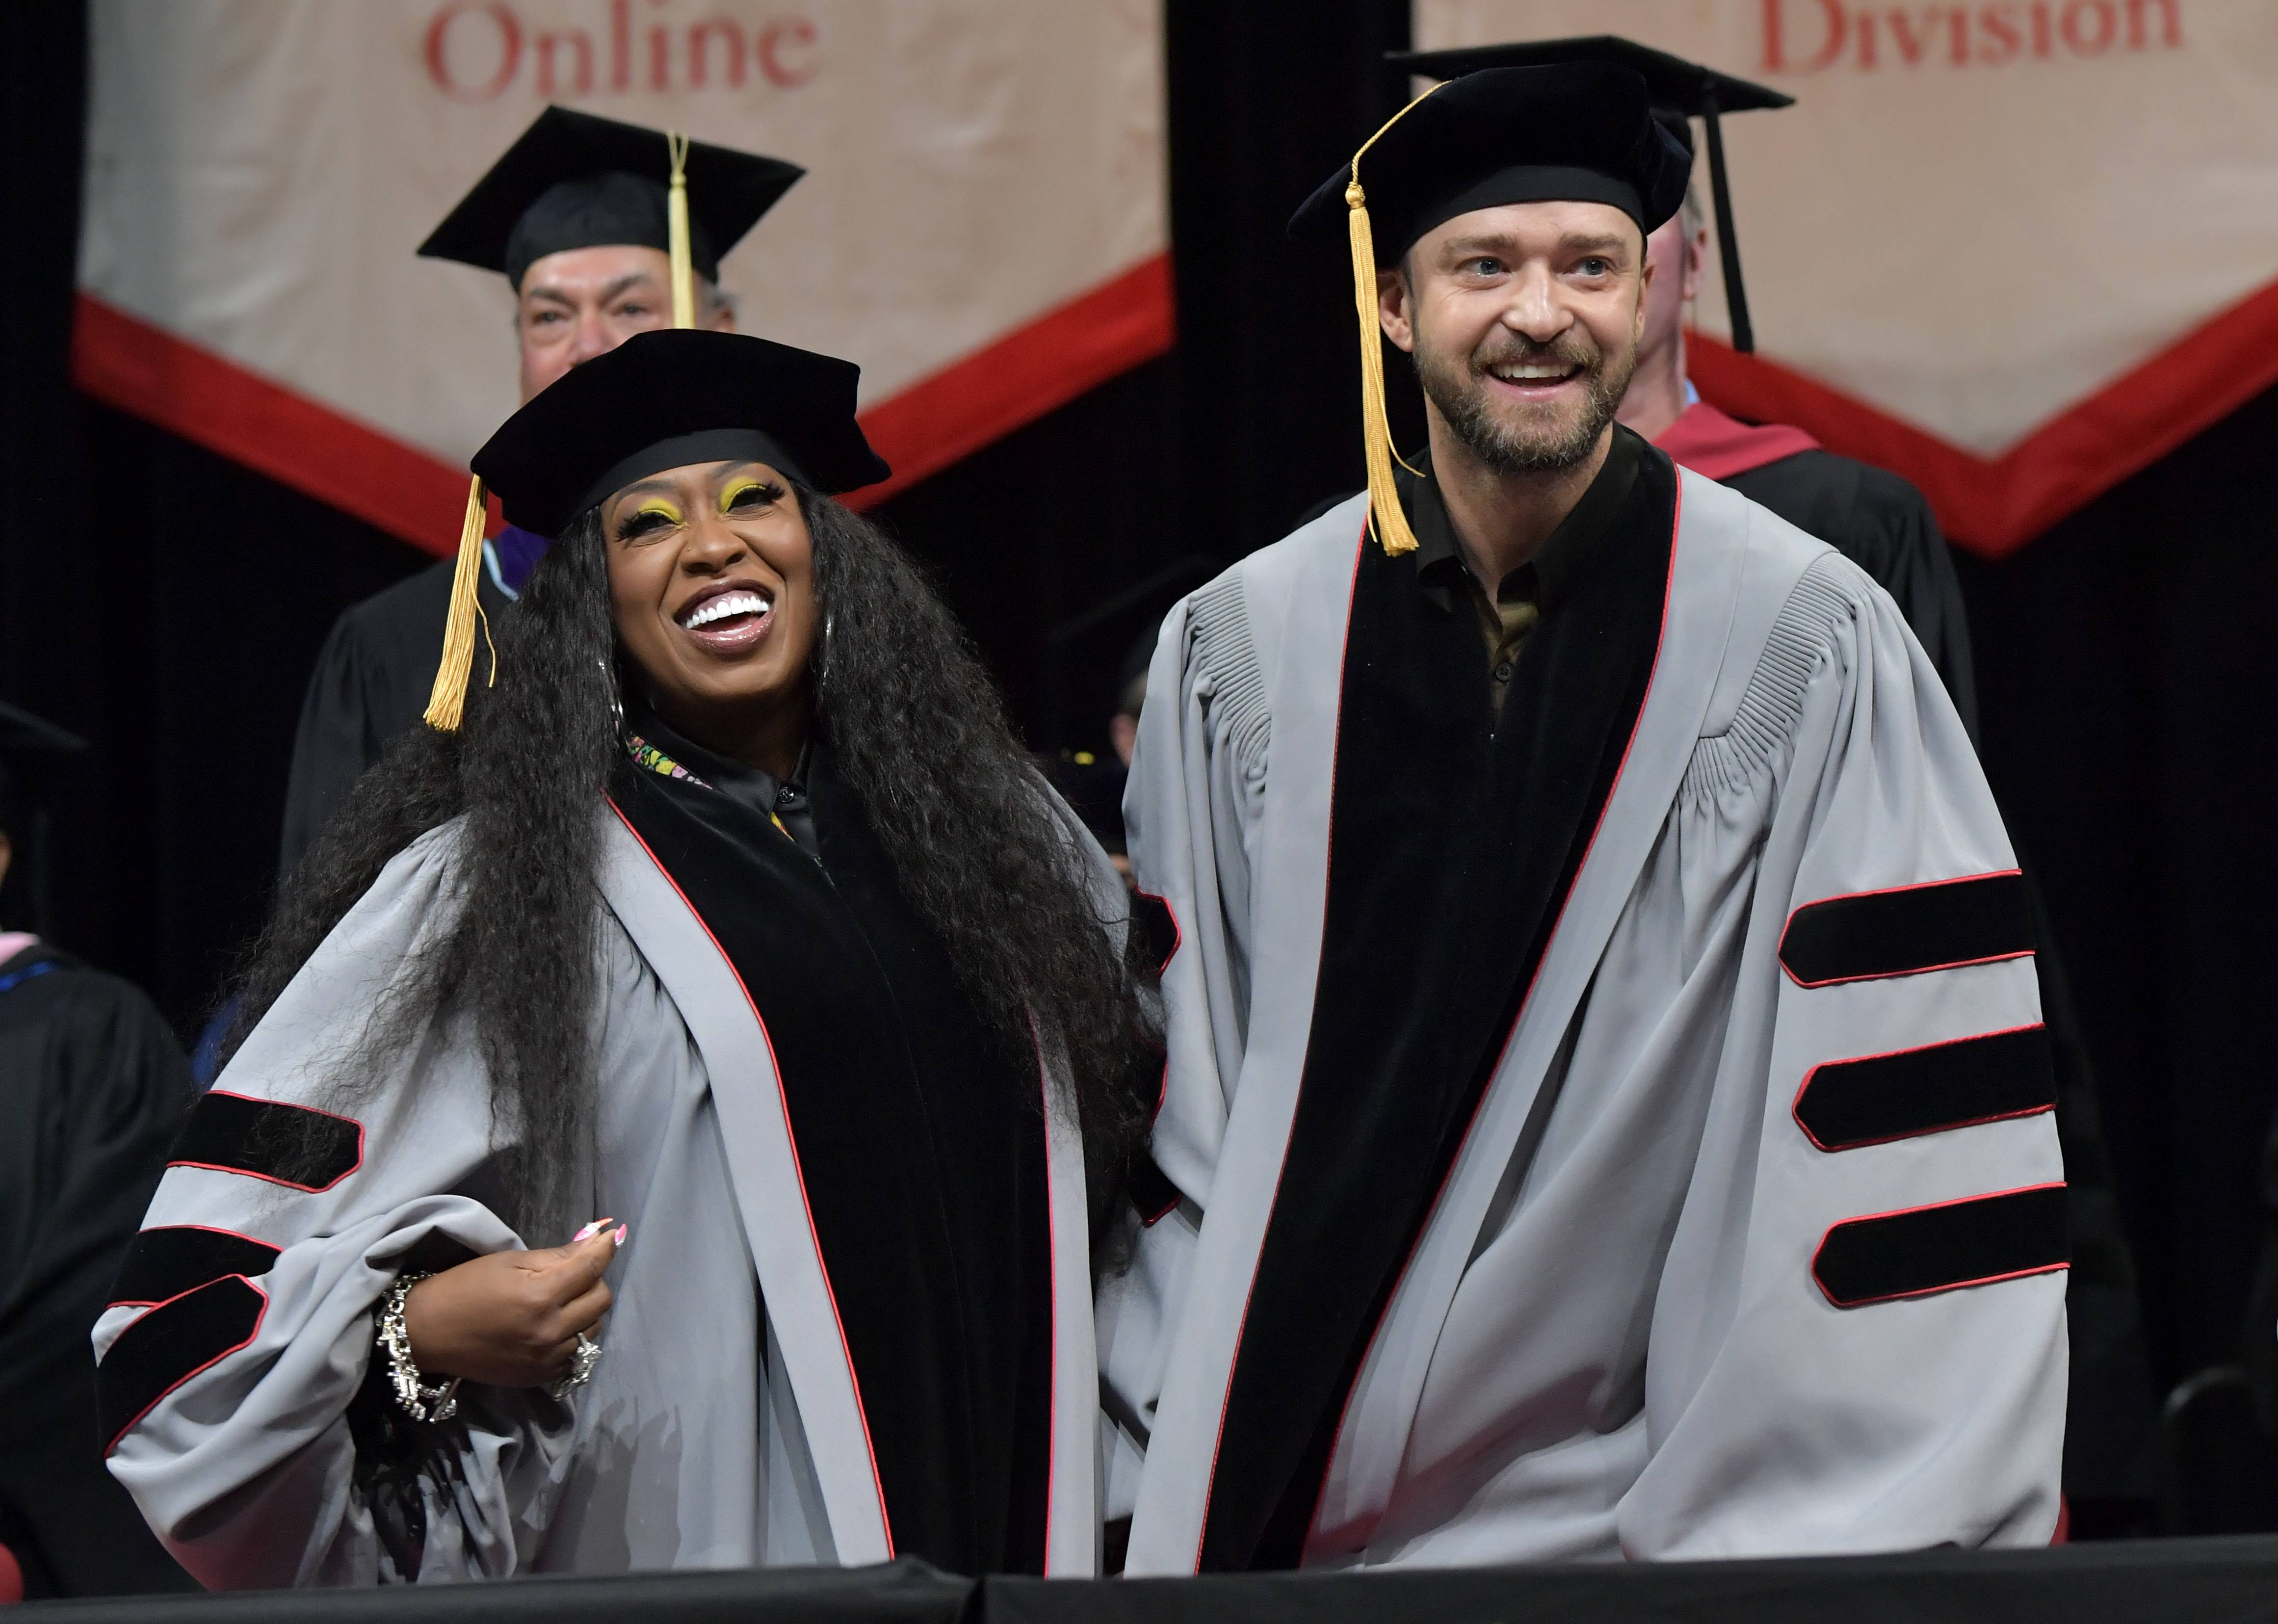 """Missy Elliott and Justin Timberlake - Missy Elliott: """"CREATE YOUR OWN LANE!!!! Sincerely Dr. MISSY ELLIOTT@Berkleecollege#VA#757""""Justin Timberlake: """"No Dream is too big!!! Keep chasing!!! Trust me... I'm a DOCTOR!! But, for real... THANK YOU to@berkleecollegefor this incredible honor—I'm very humbled and grateful.""""(Photo: Paul Marotta/Getty Images for Berklee)"""